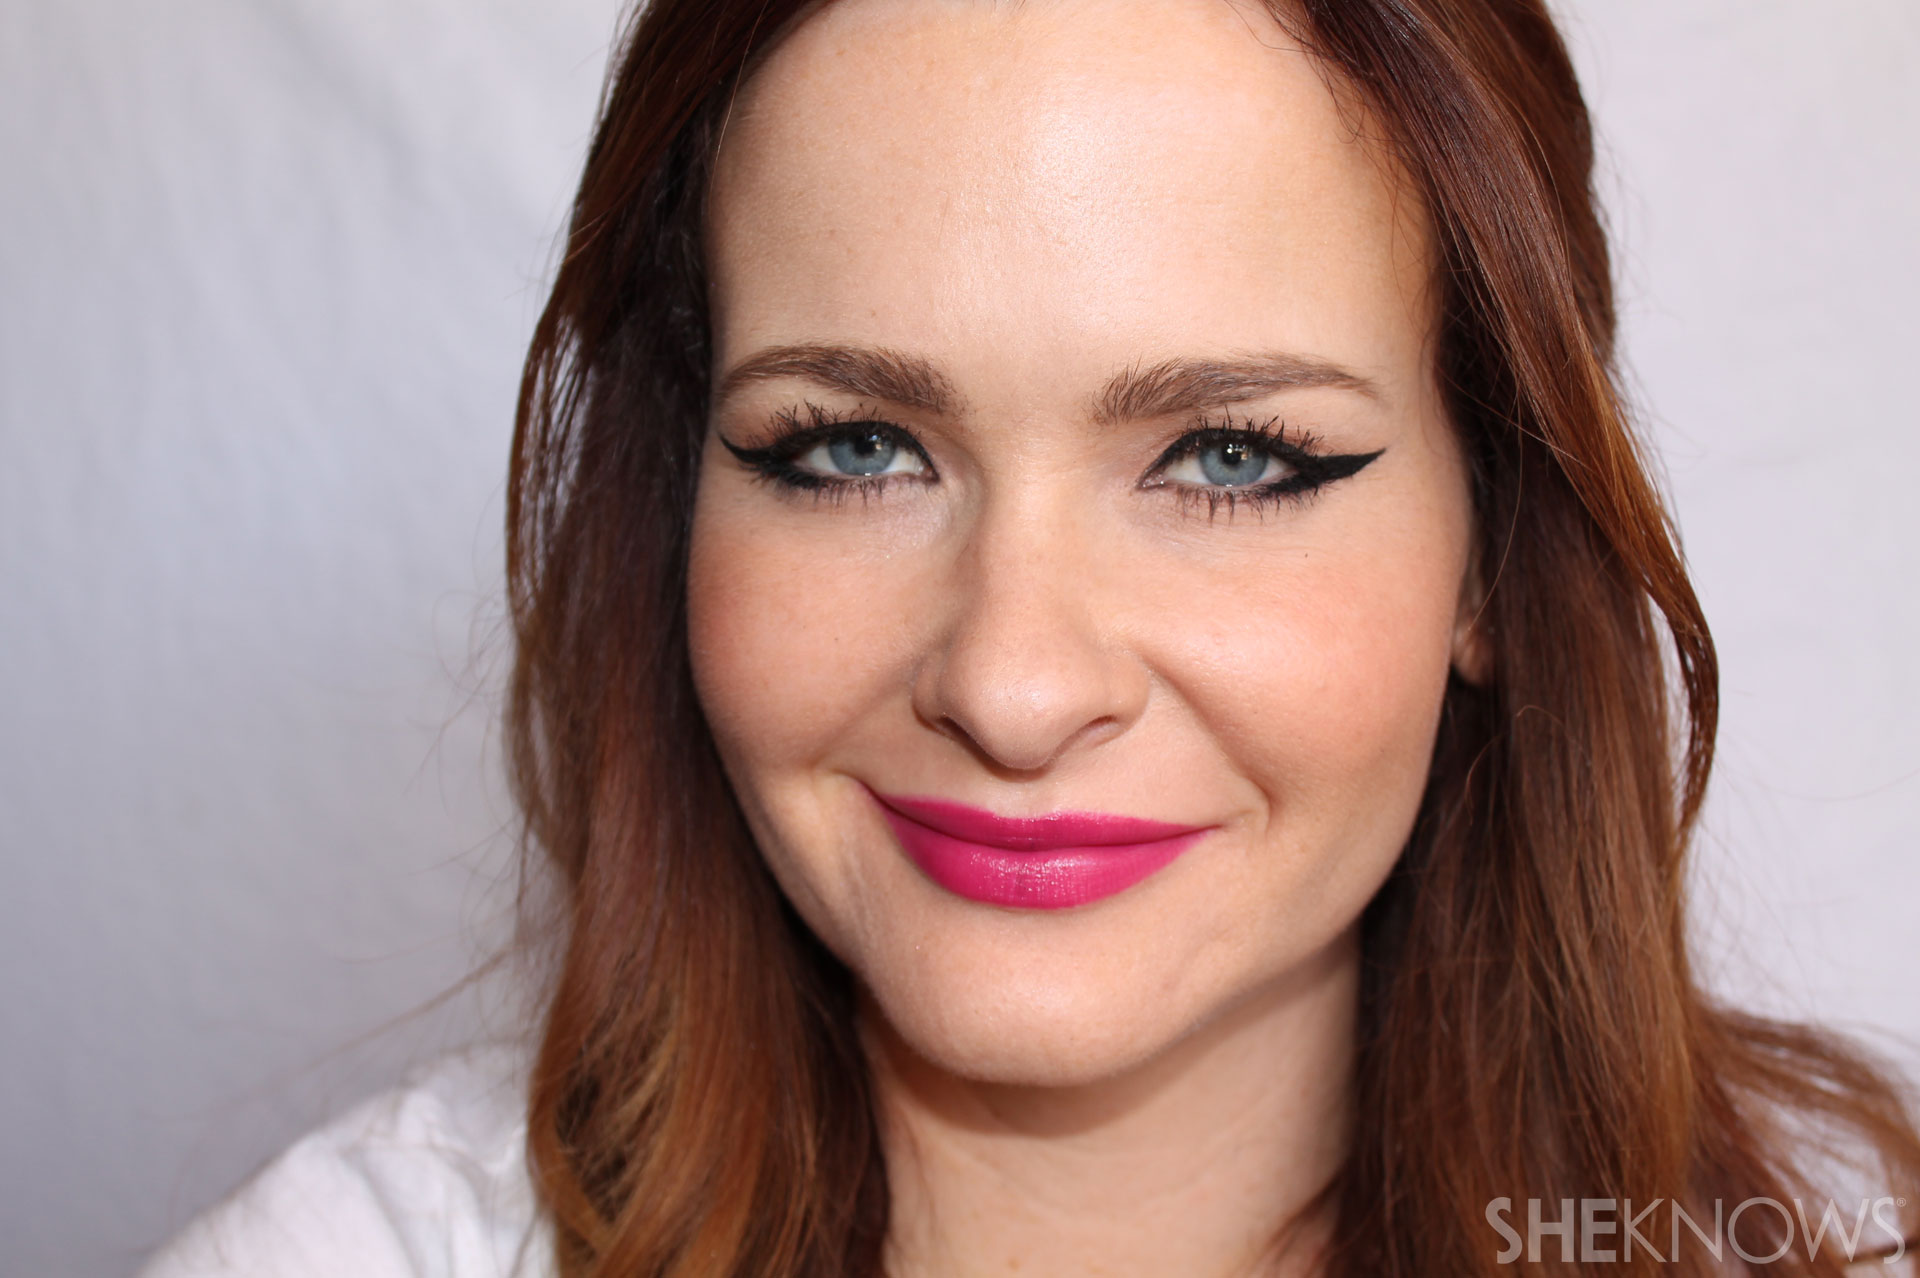 DIY Extreme cateye and bold lips: Finish with bright lipstick